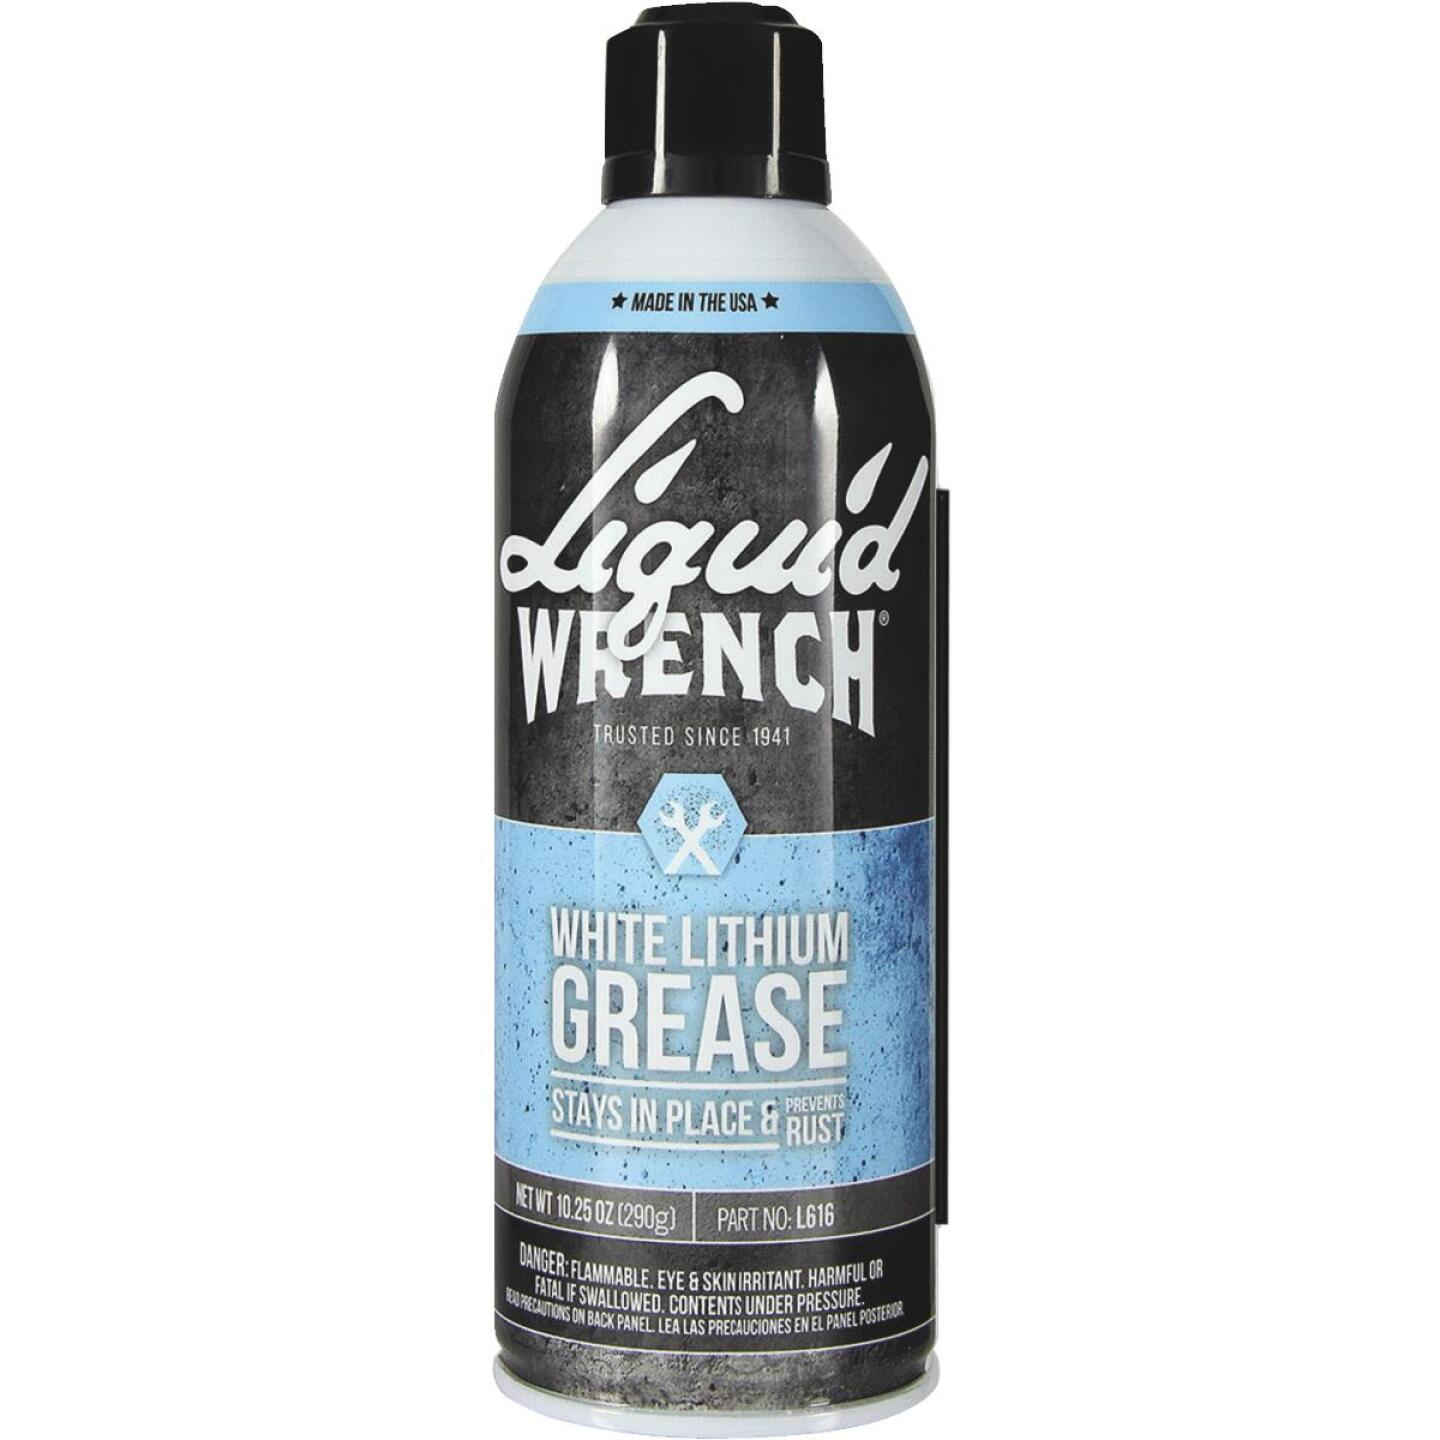 Liquid Wrench 10.25 Oz. Aerosol White Lithium Grease Image 1